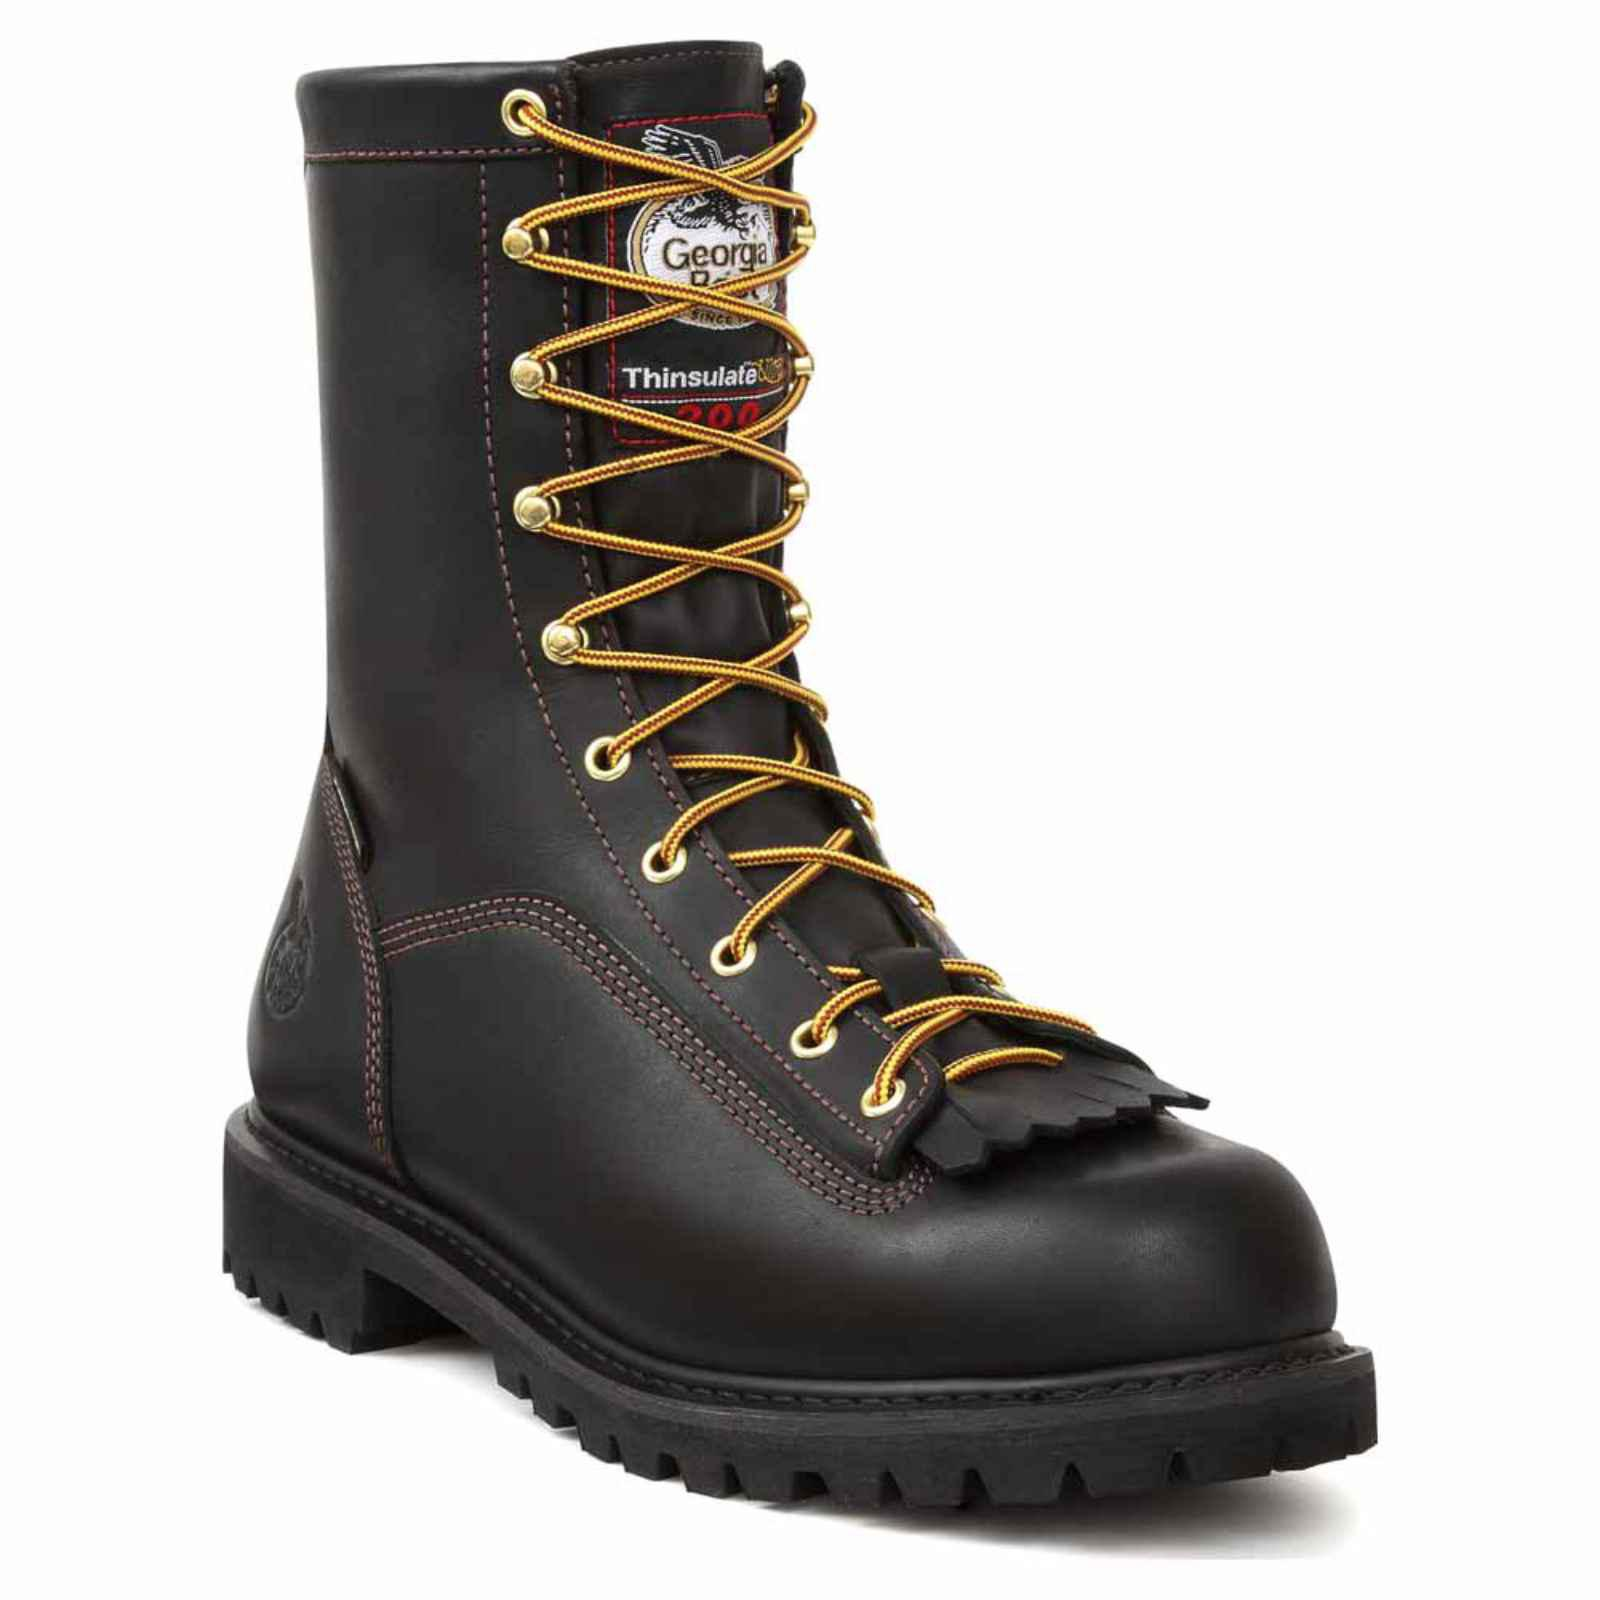 Georgia Lace-To-Toe Gore-Tex Waterproof Insulated Work Boot G8040